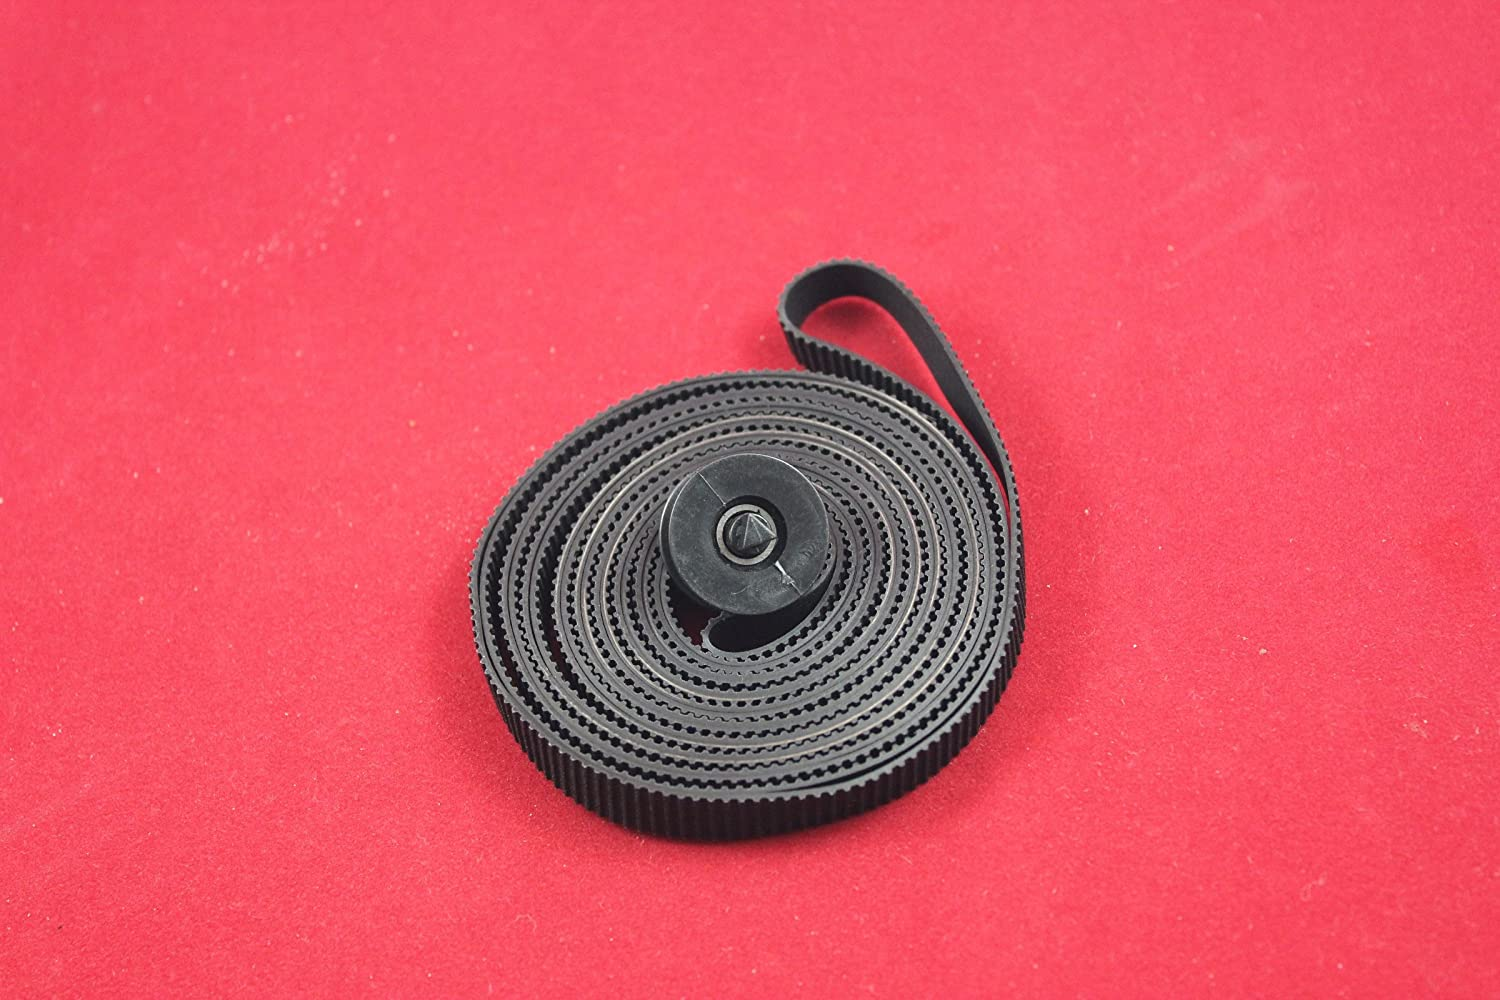 Carriage Drive Belt for HP DesignJet 500 510 500ps 800 800ps (42in Model Only)